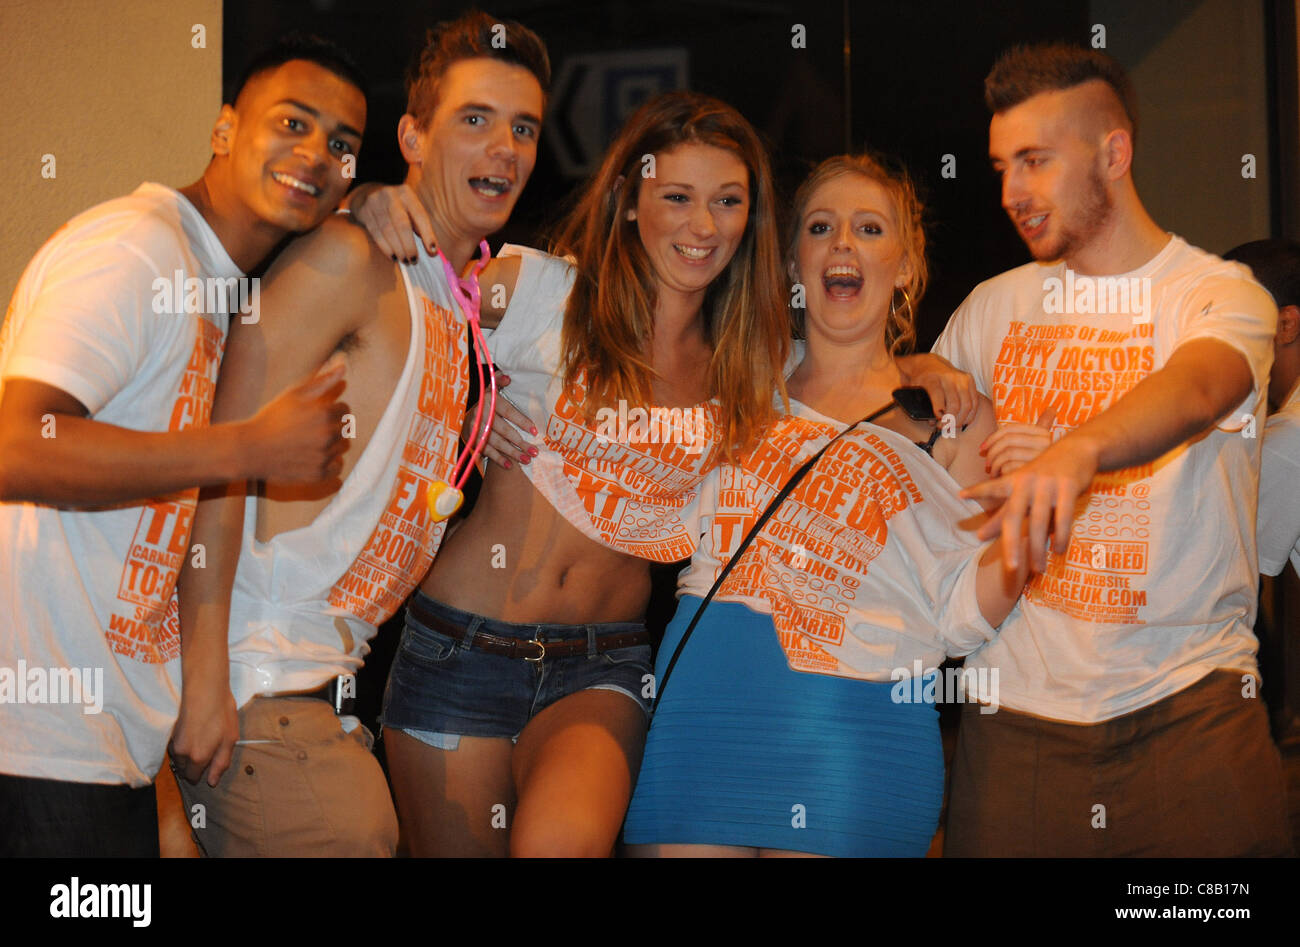 Sussex and Brighton  University students enjoy the annual Carnage UK event in Brighton - Stock Image